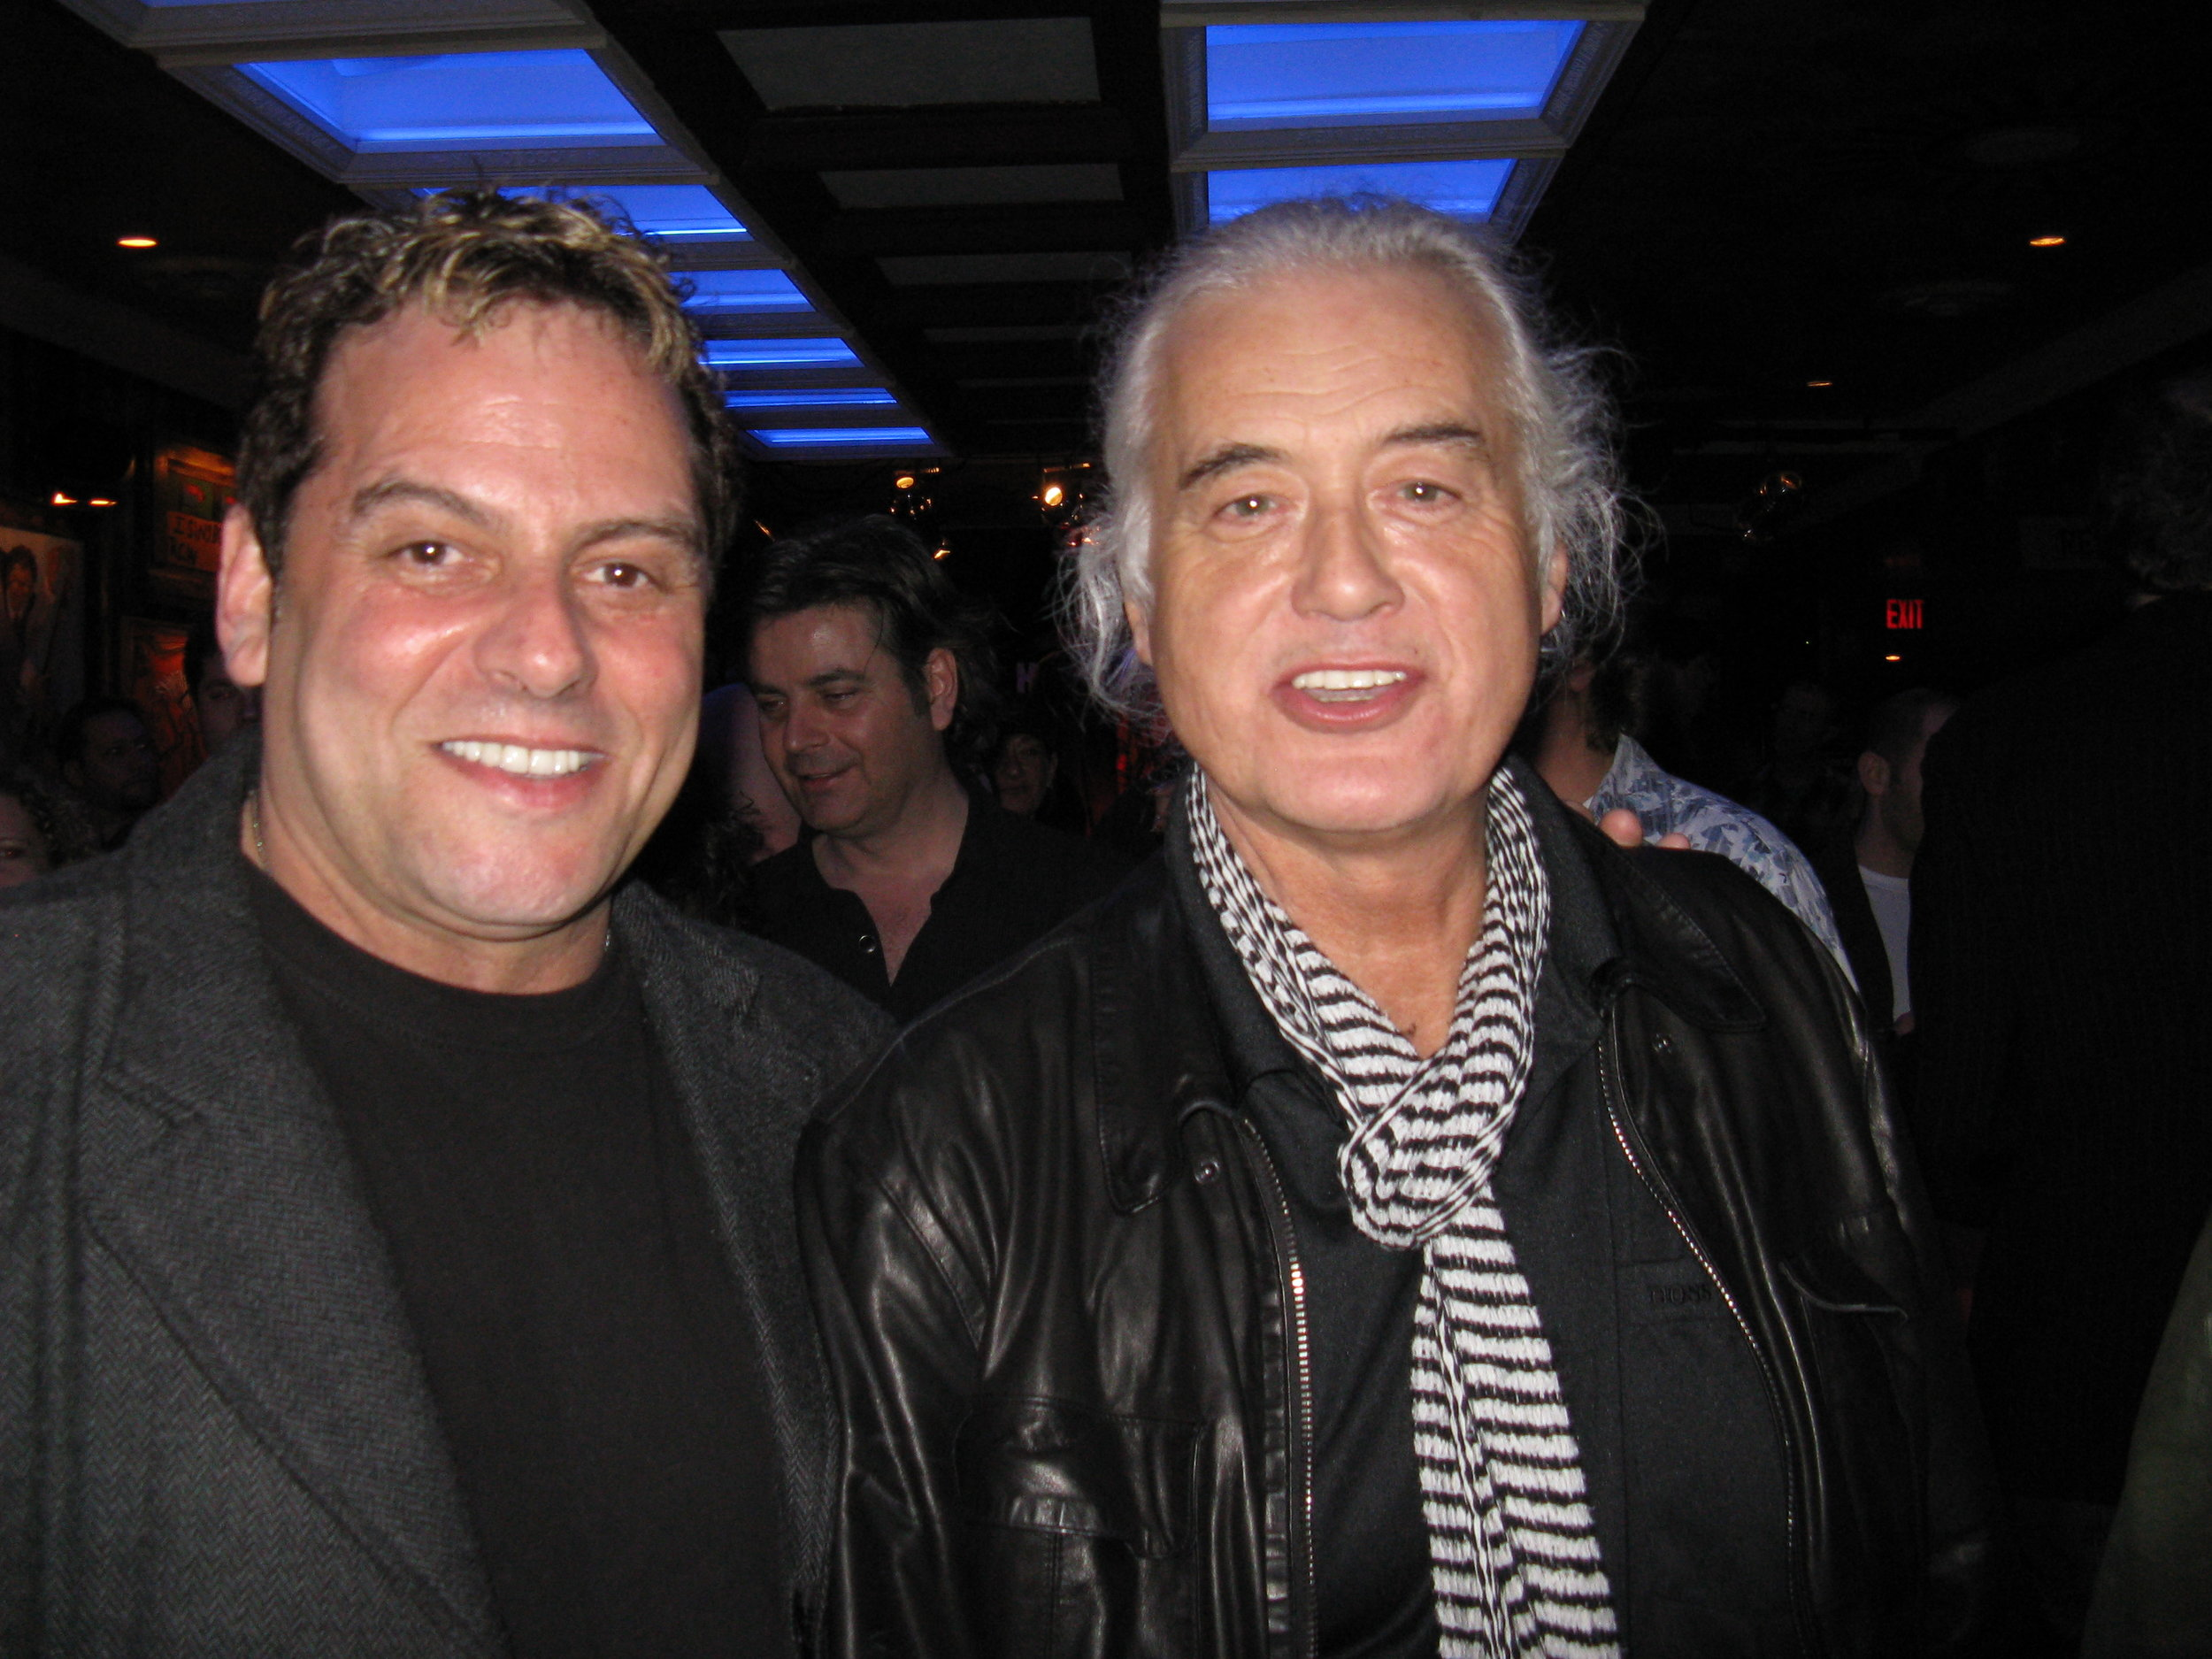 Hanging with Jimmy Page at the Rock and Roll Hall of Fame.